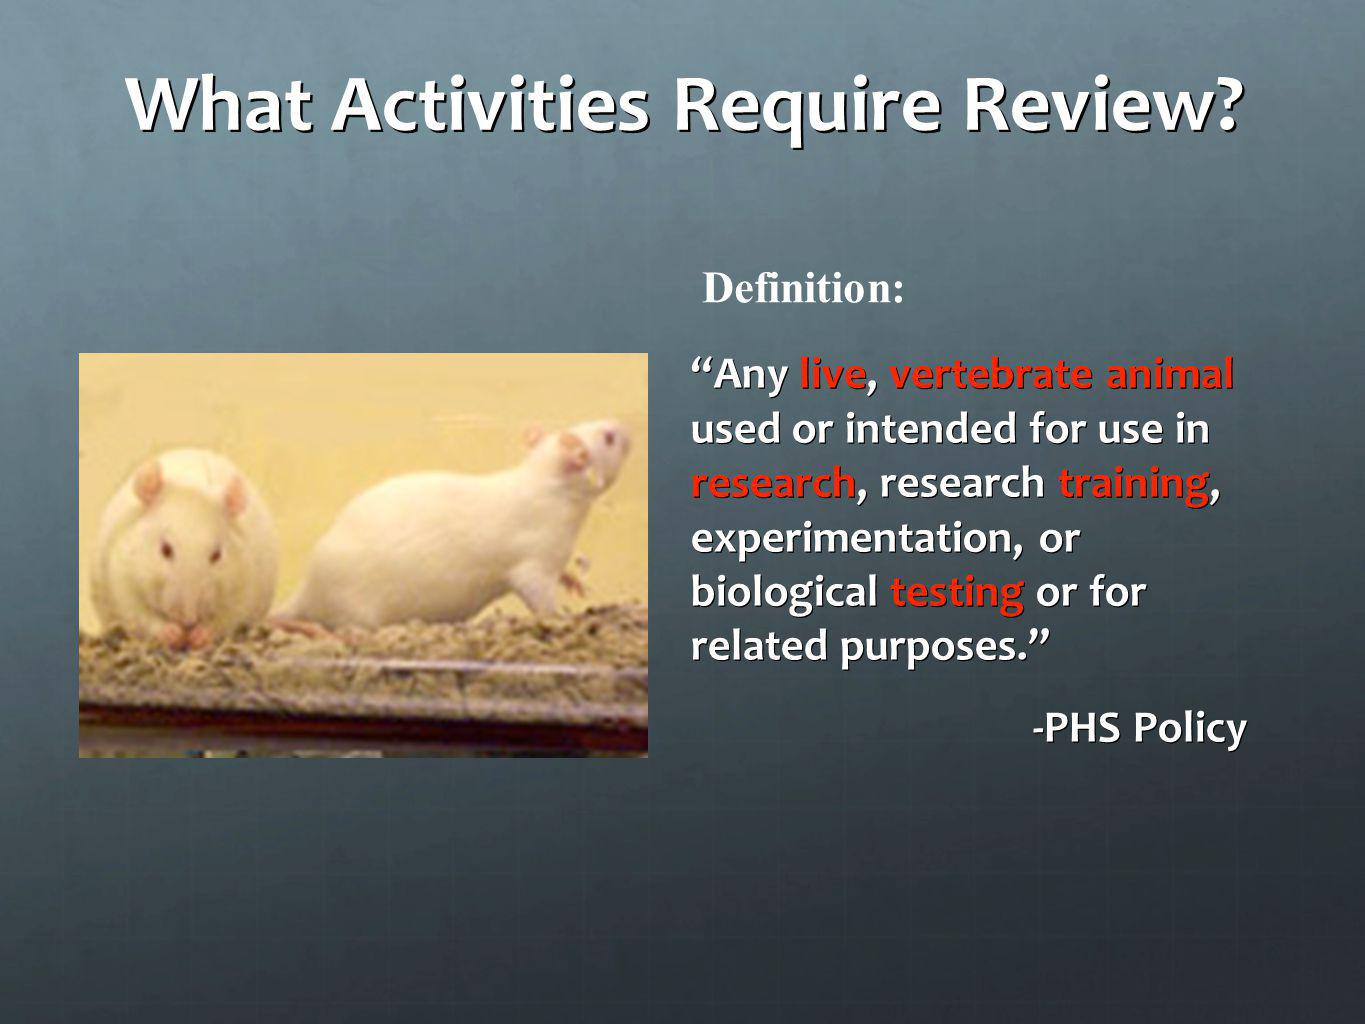 What Activities Require Review